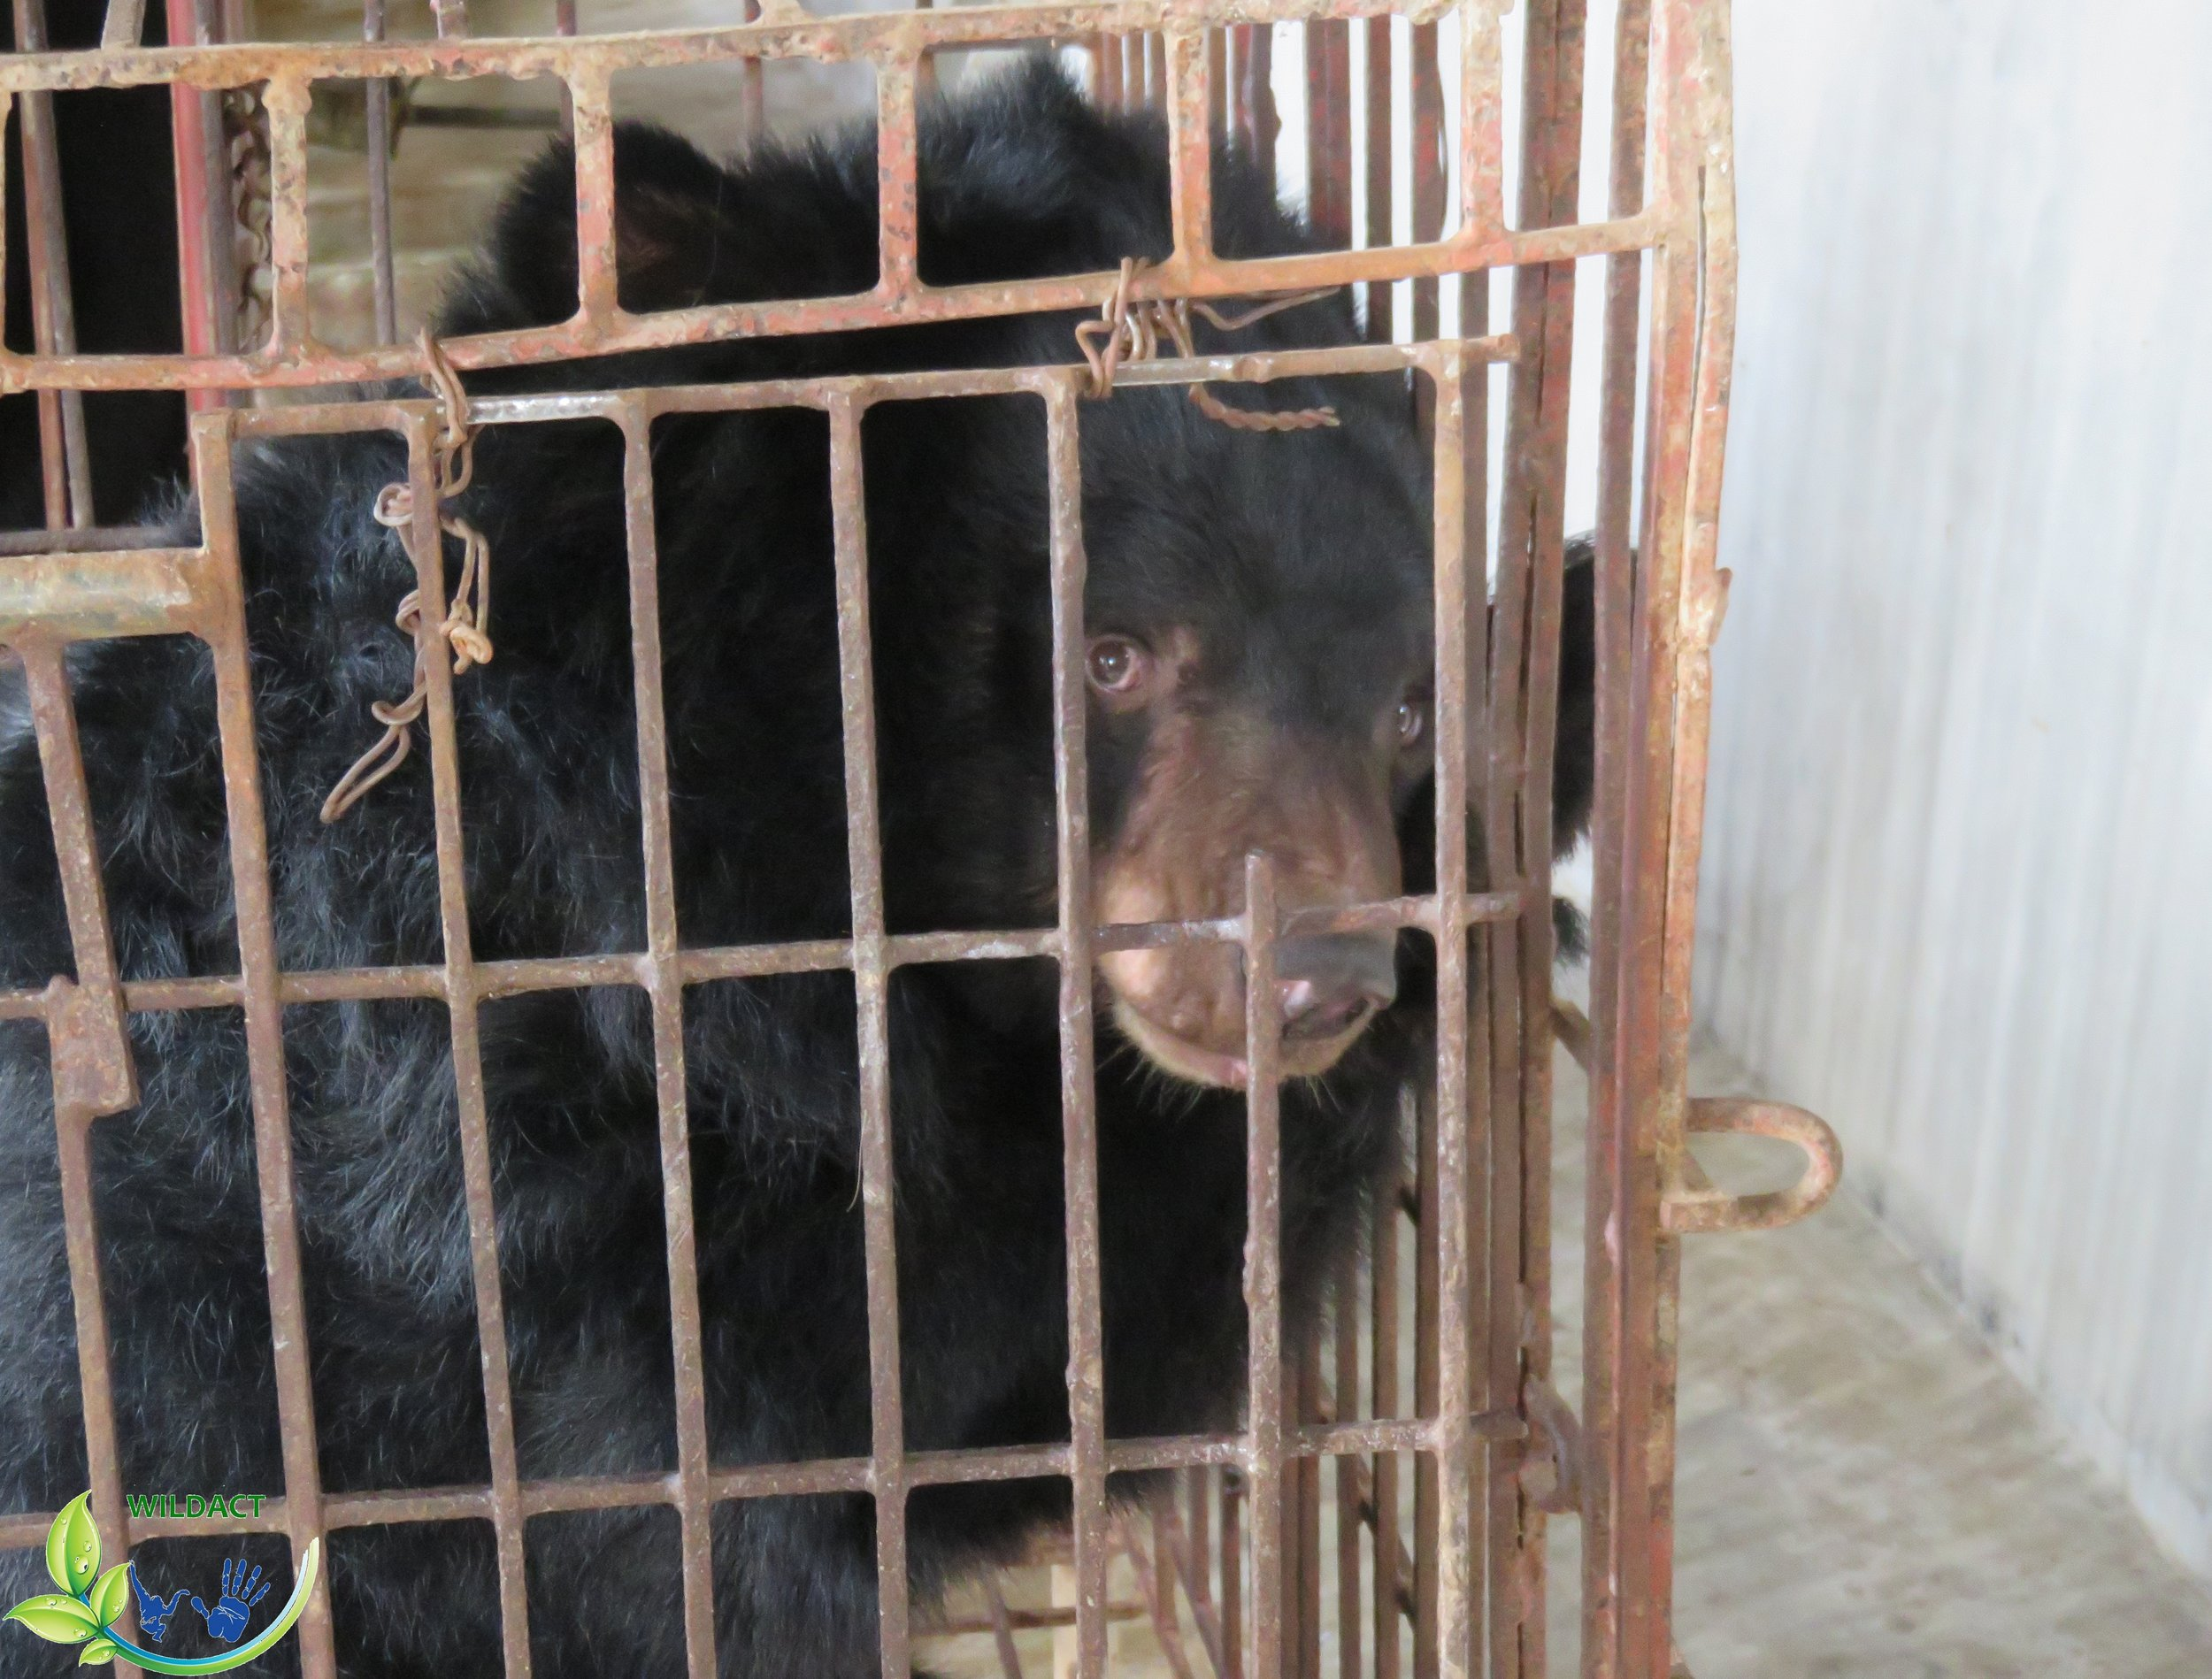 A moon bear were kept in captivity for bear bile farming in Vietnam - WildAct